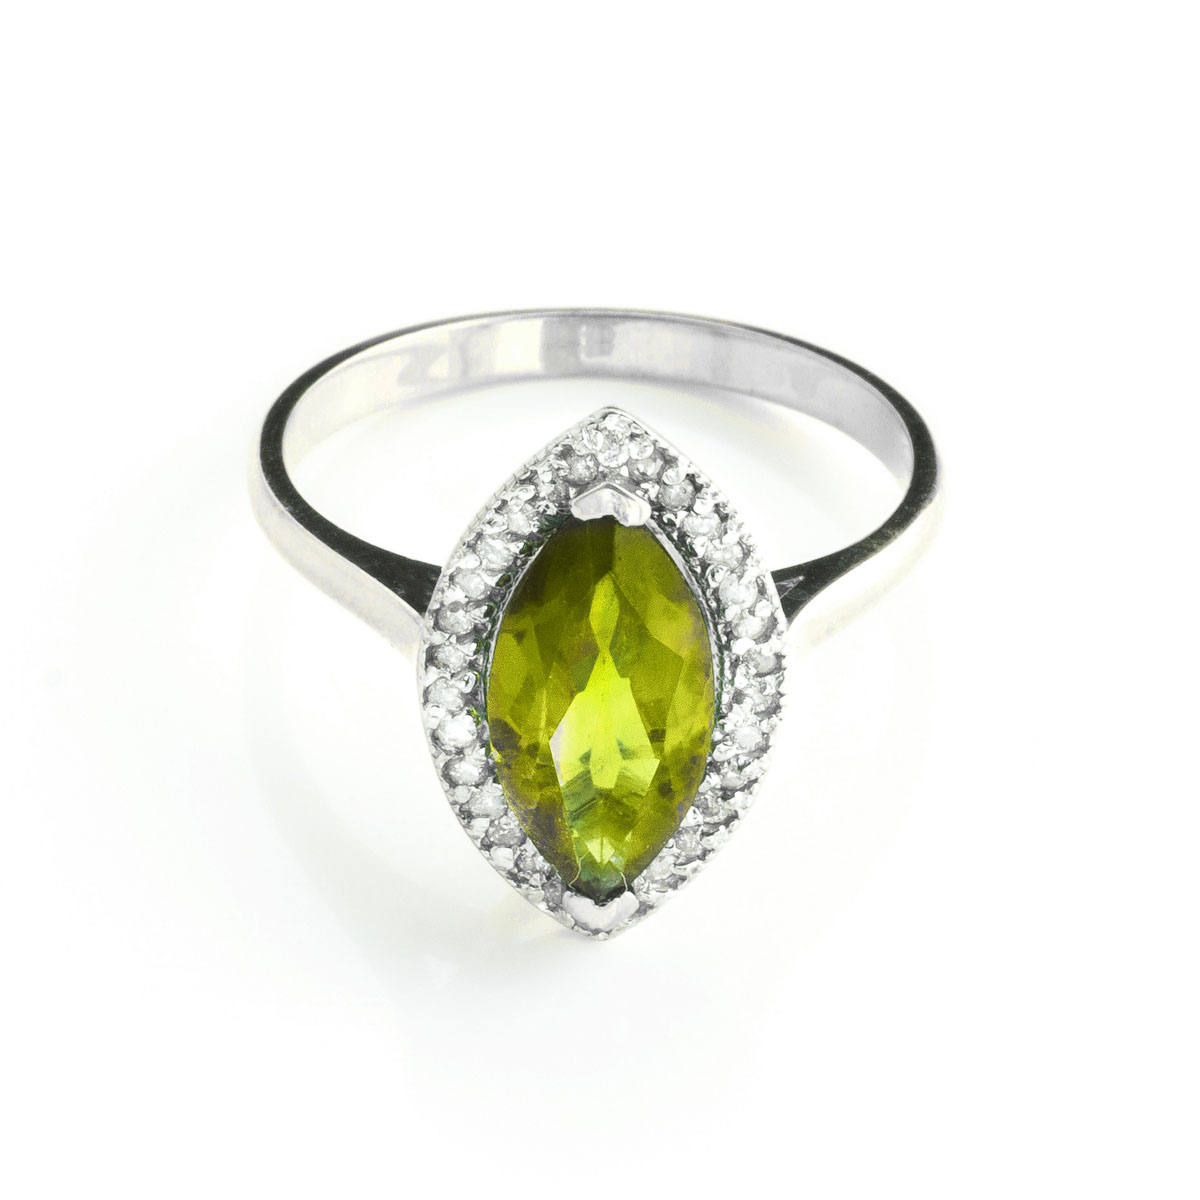 Peridot Halo Ring 2.15 ctw in 9ct White Gold